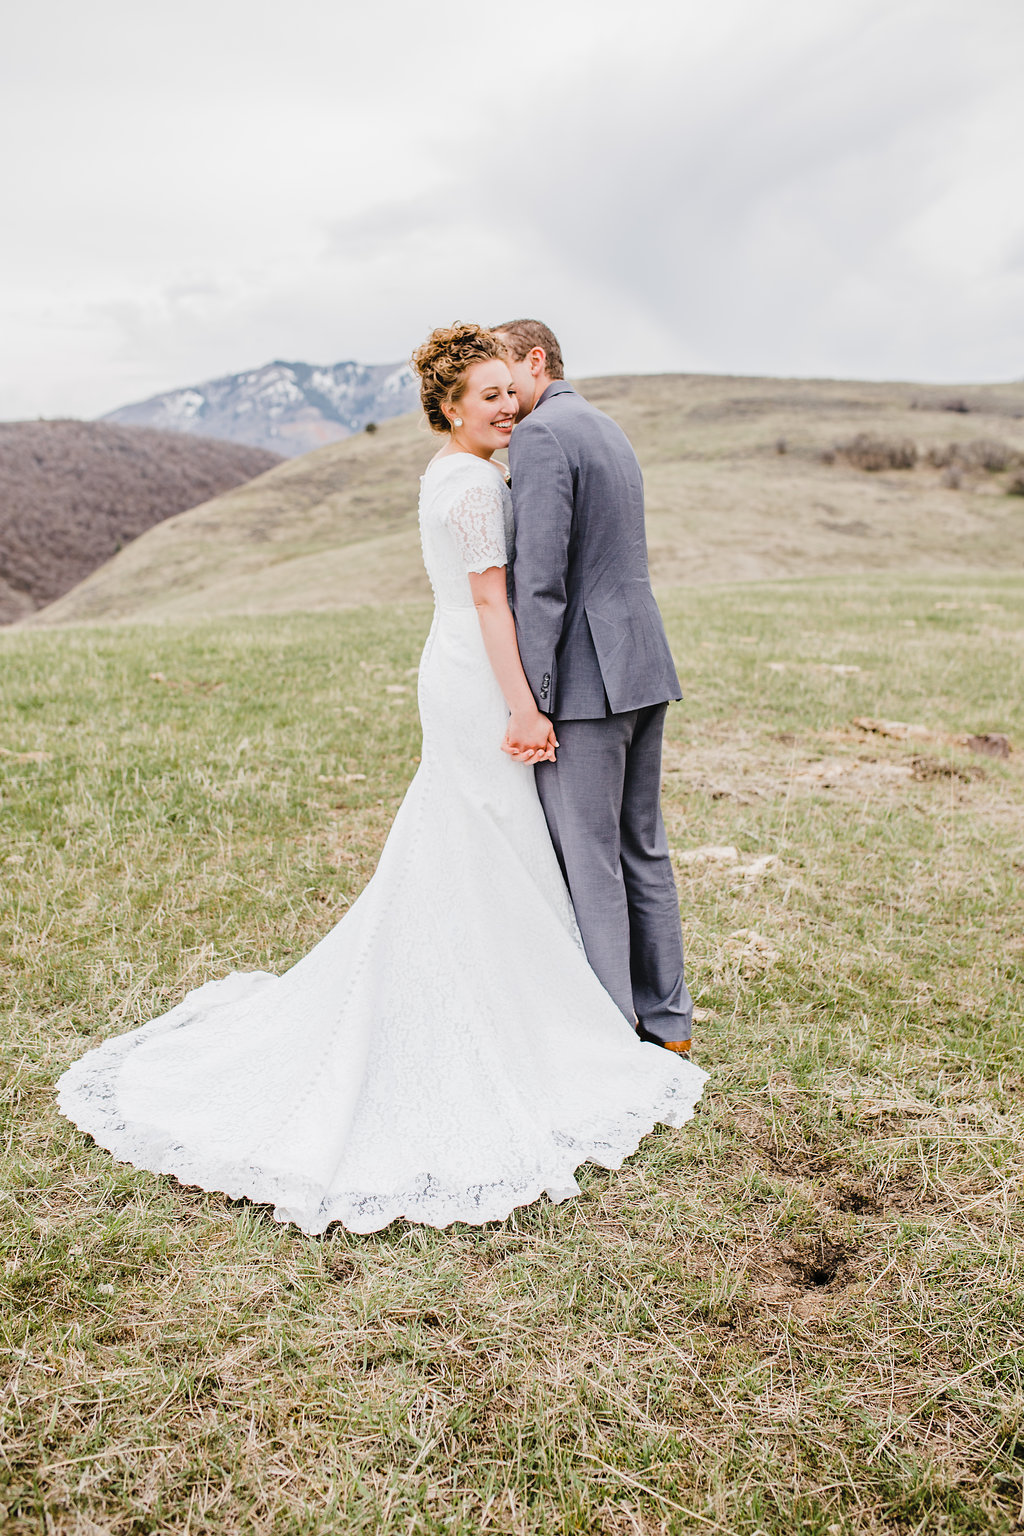 rolling hills bright light photography natural posing adventurous wedding young couples